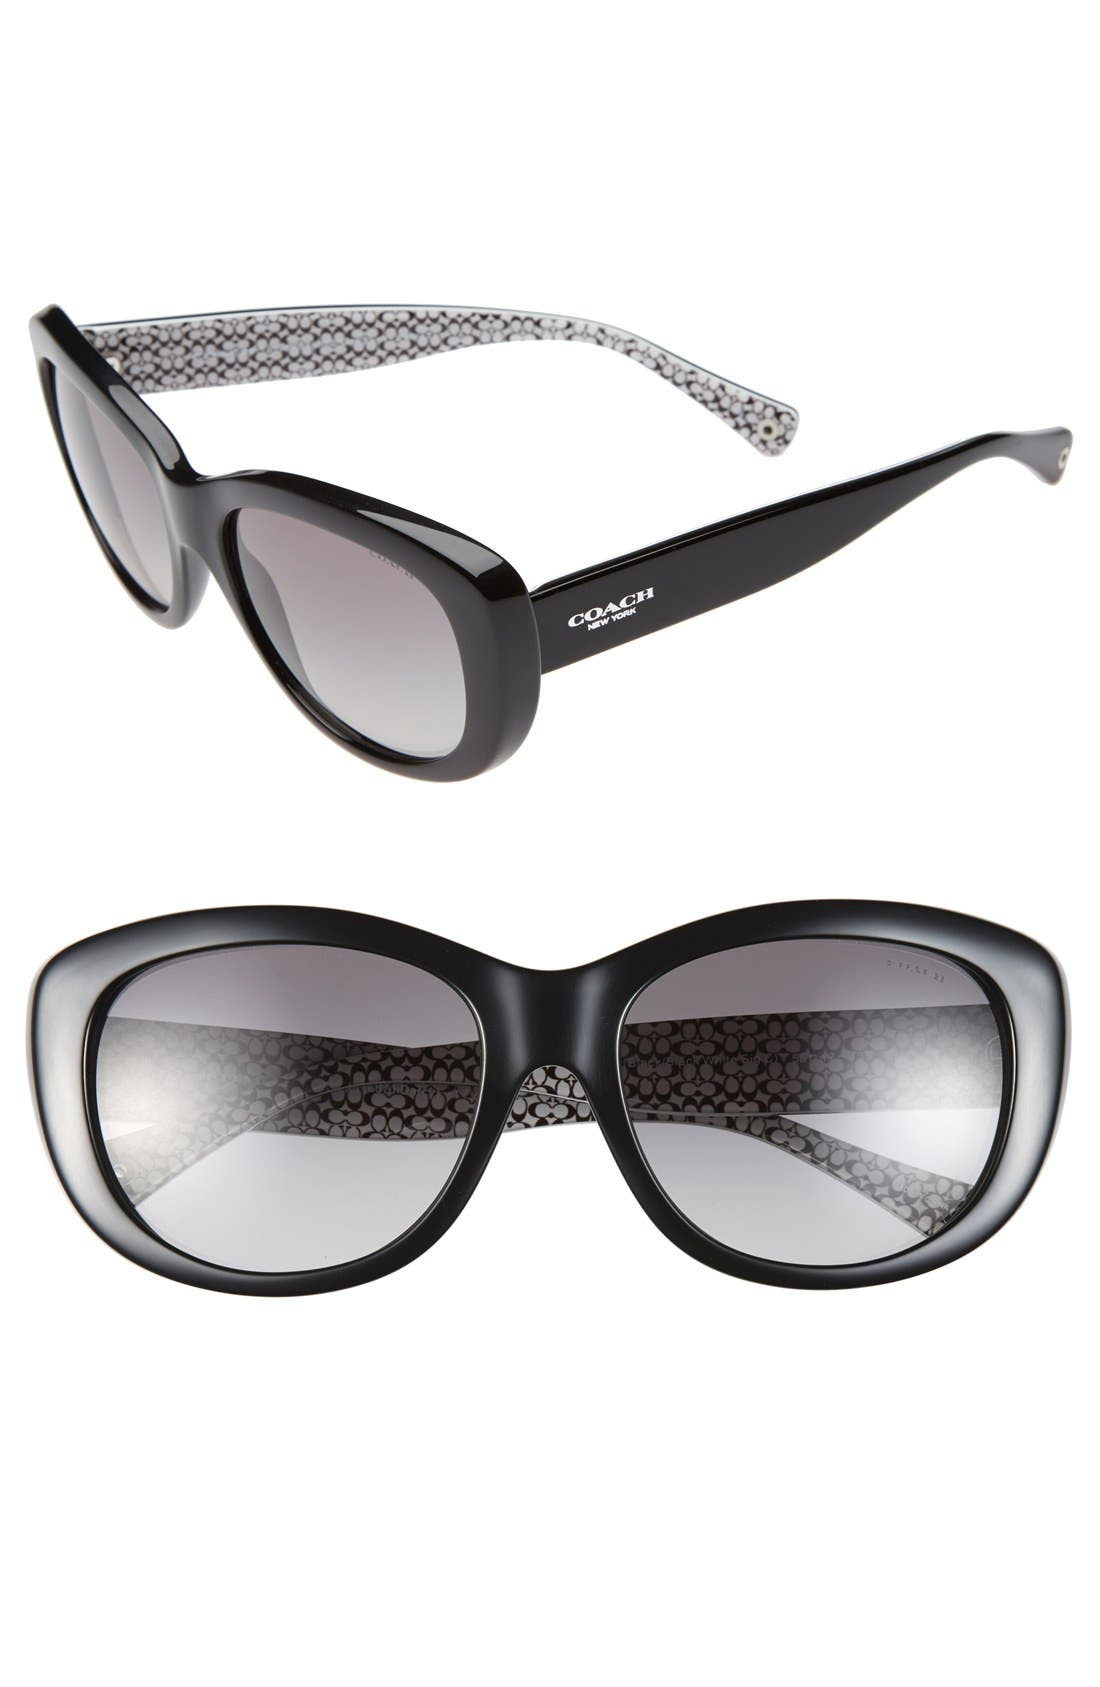 Alternate Image 1 Selected - COACH 58mm Cat Eye Sunglasses